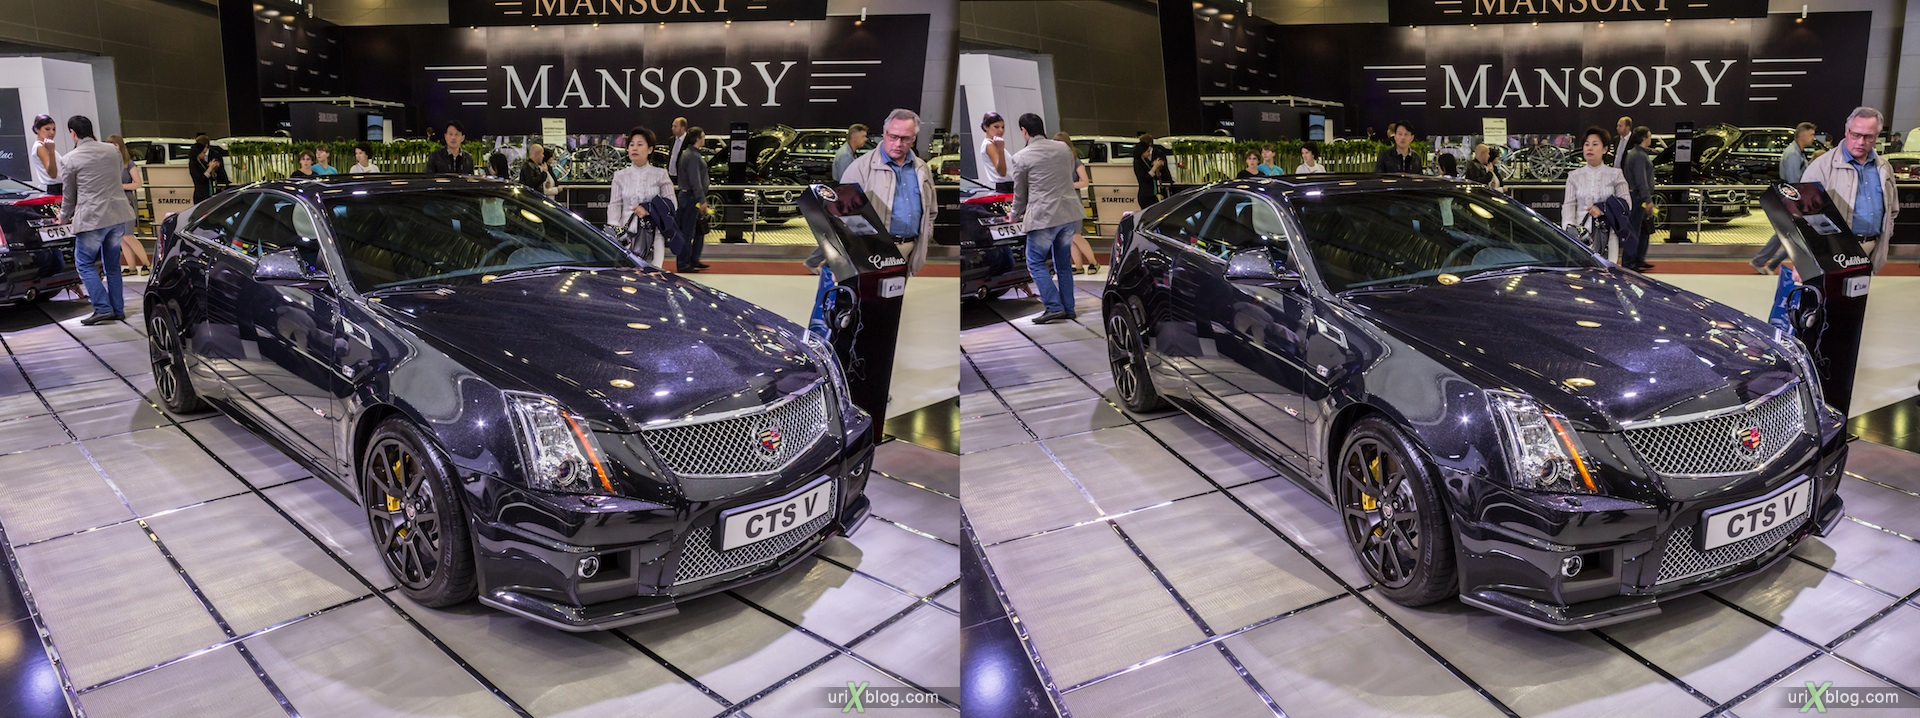 2012, Cadillac CTS V, Moscow International Automobile Salon, auto show, 3D, stereo pair, cross-eyed, crossview